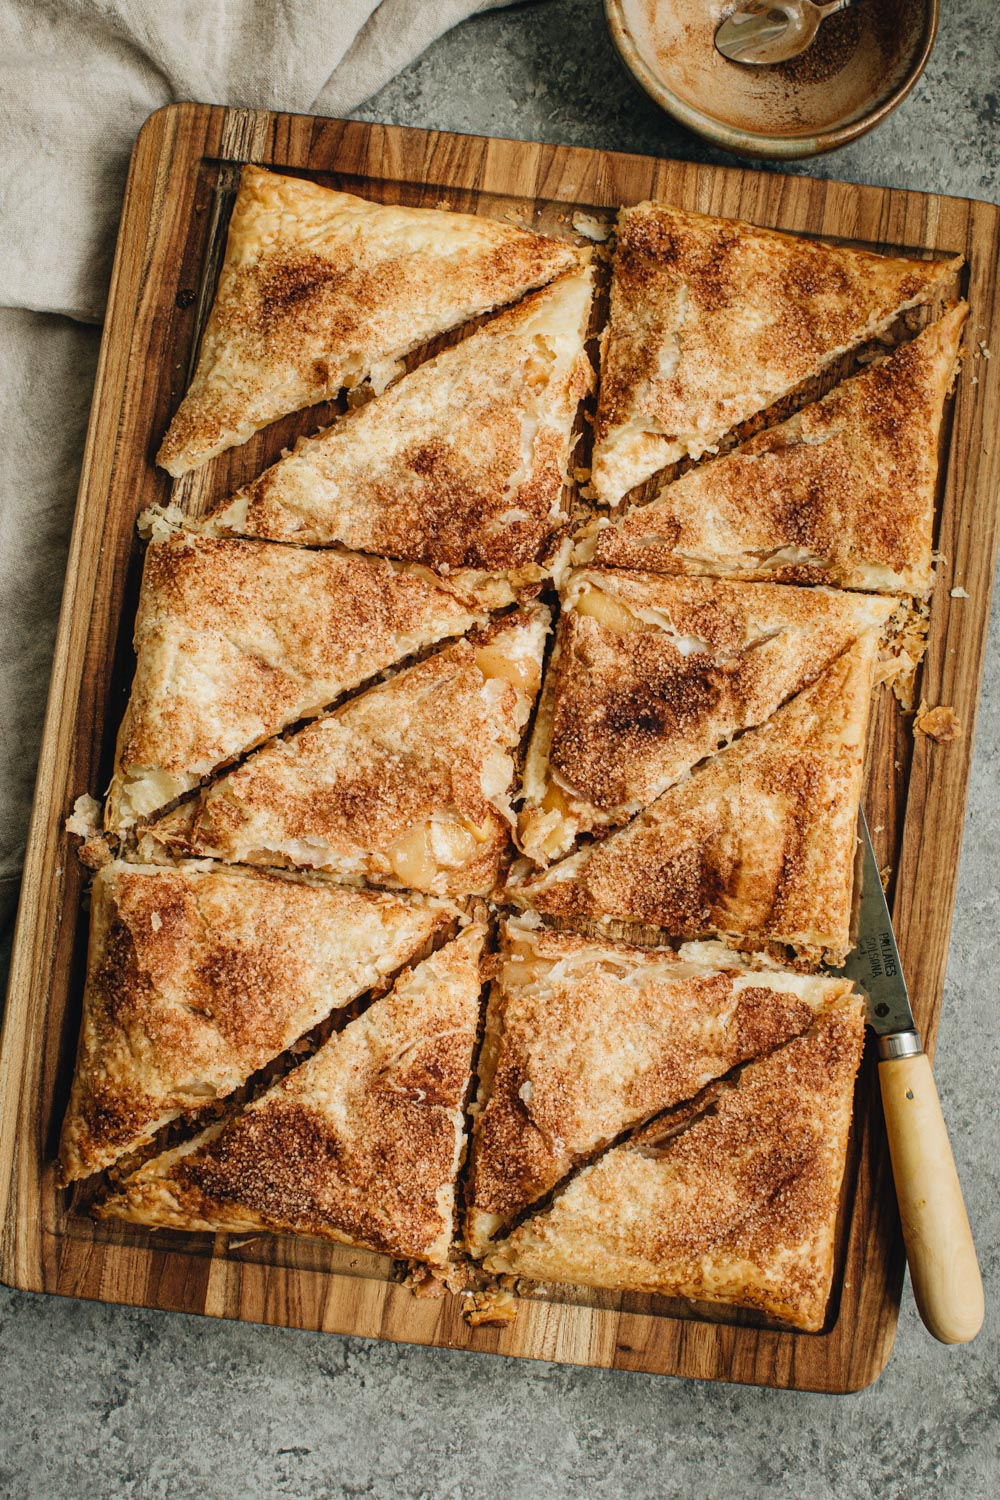 Sliced Apple Cheese Danishes on wooden cutting board.